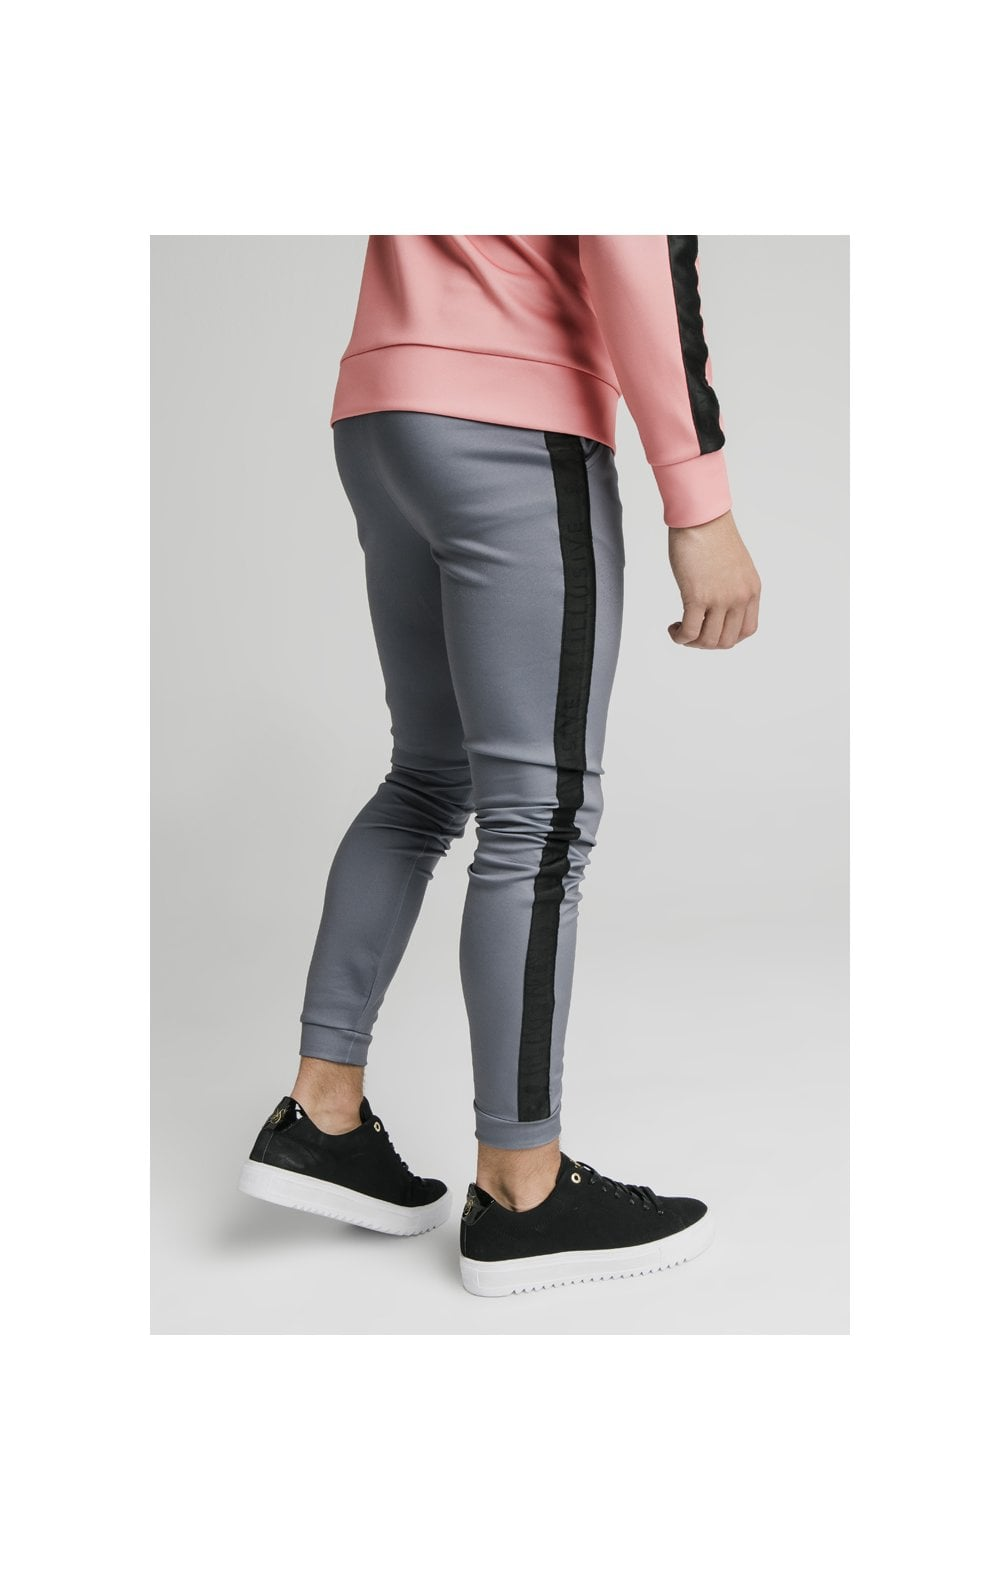 Load image into Gallery viewer, Illusive London Athlete Pants - Grey (1)